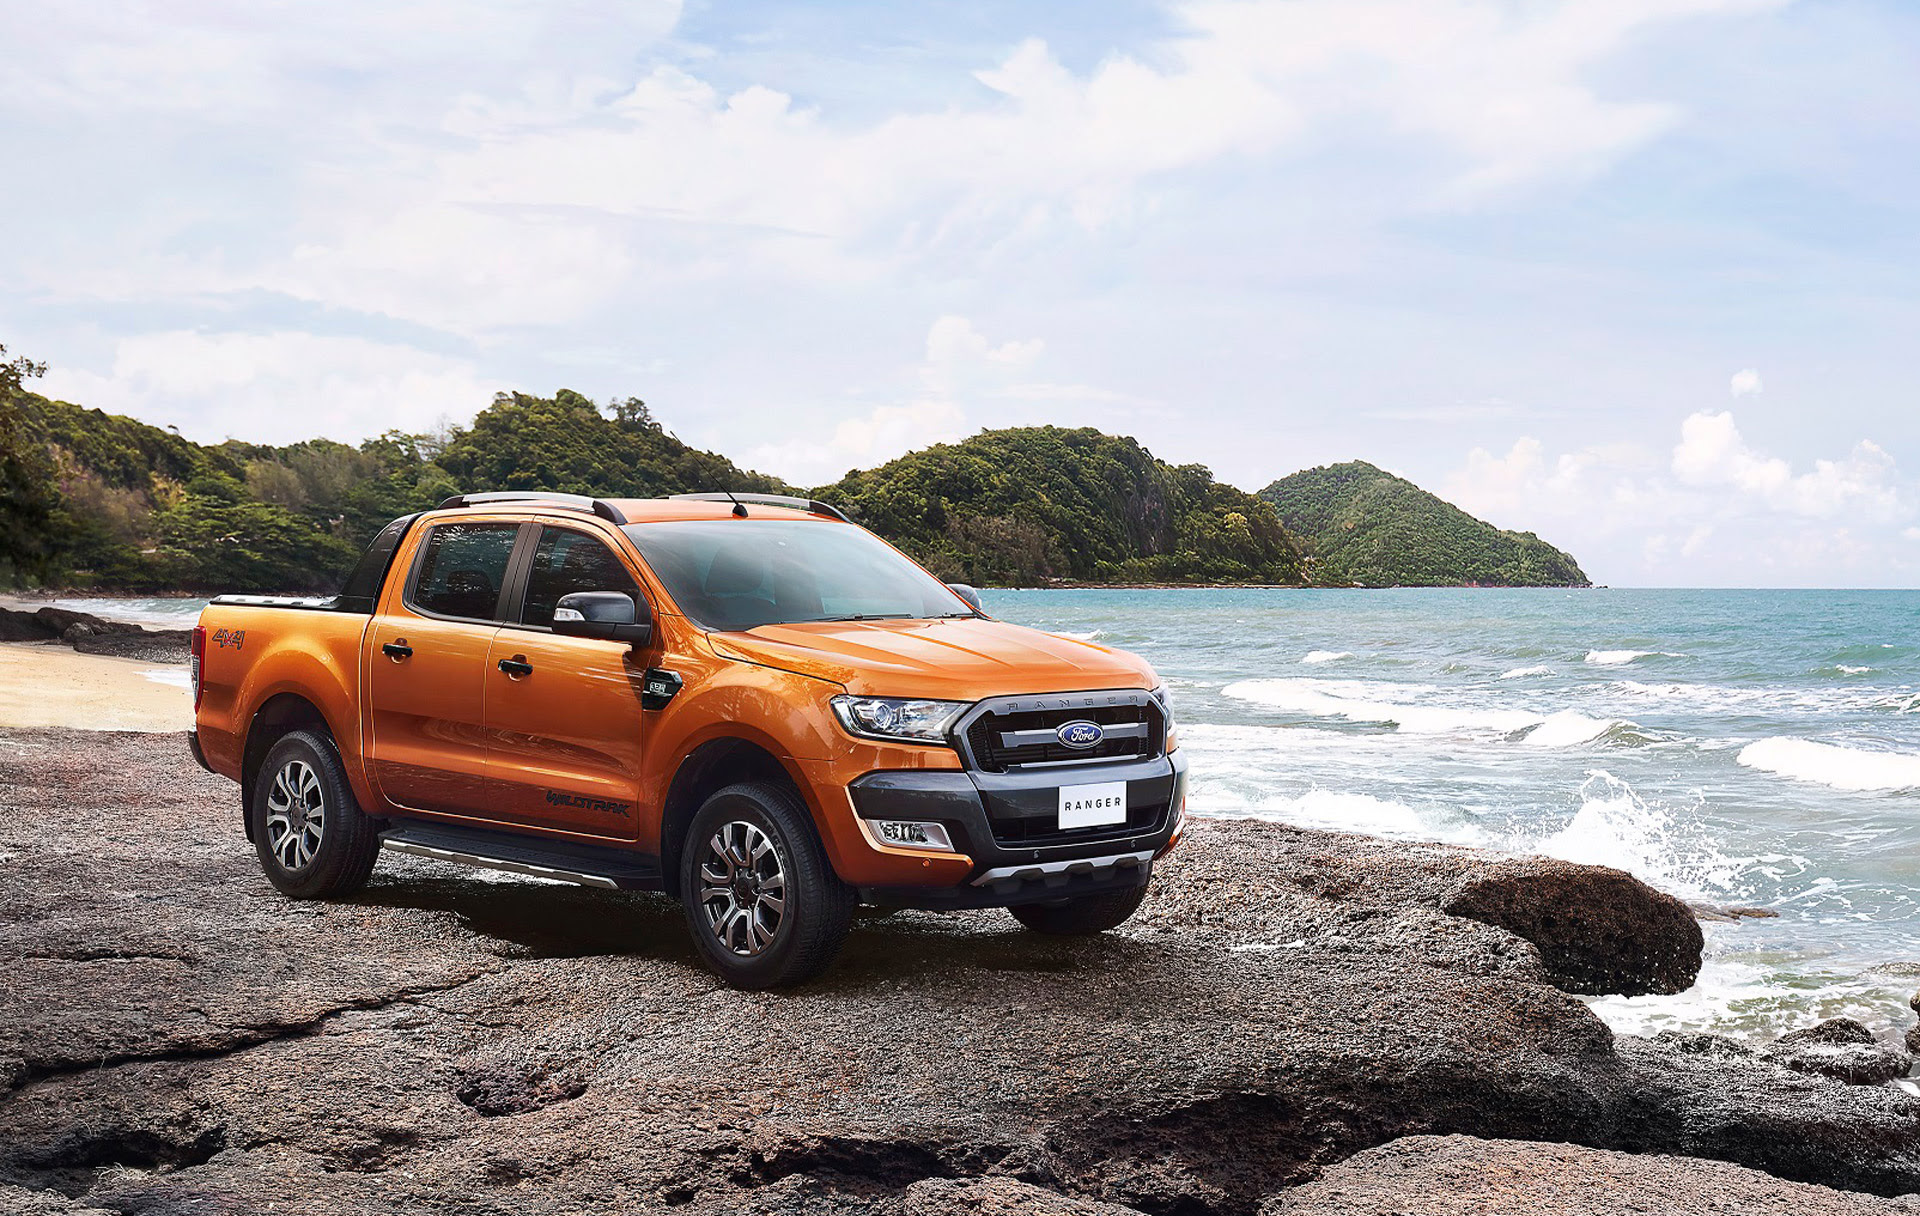 Ford Ranger Mid-Size Pickup May Return To U.S. In 2018